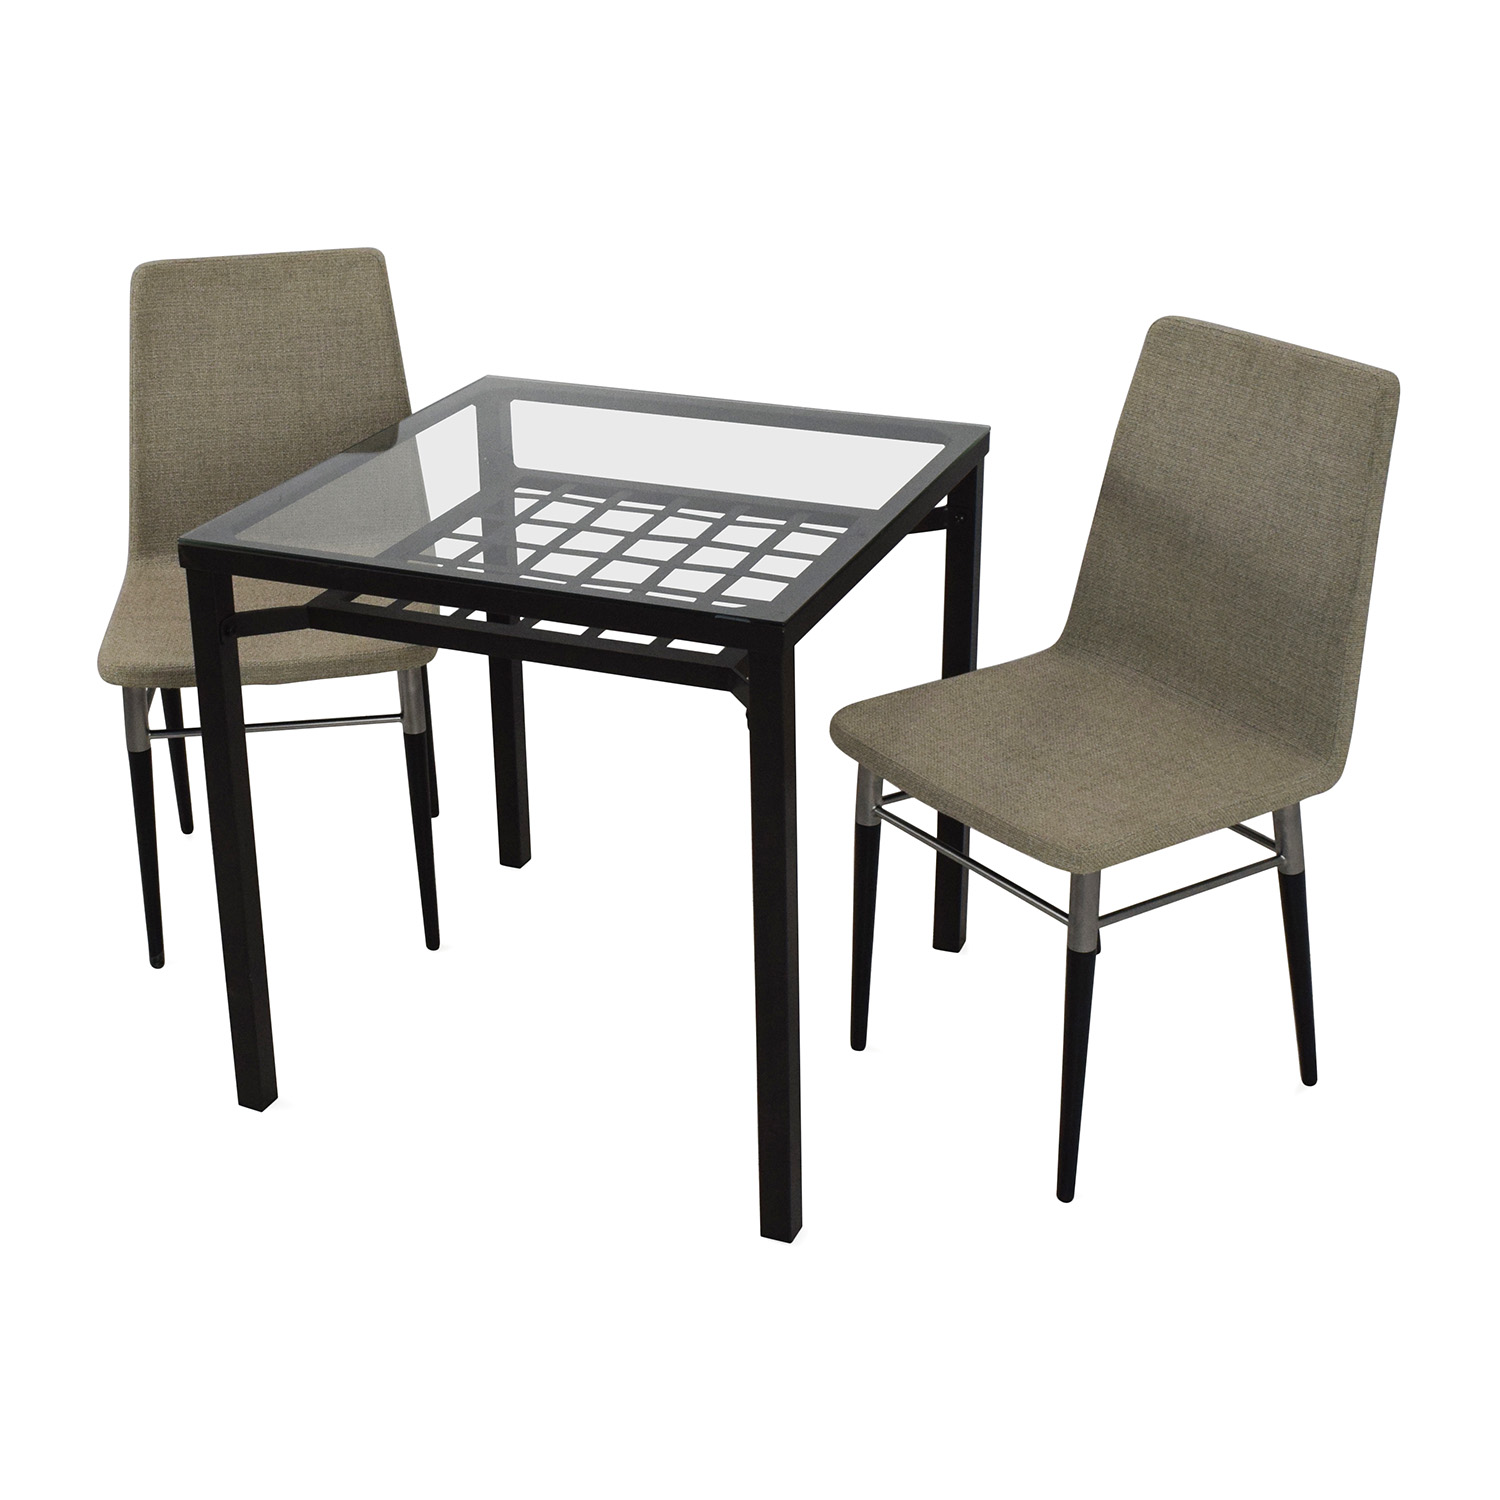 Ikea Table Chairs 85% Off - Ikea Ikea Granas Table With Preben Chairs / Tables